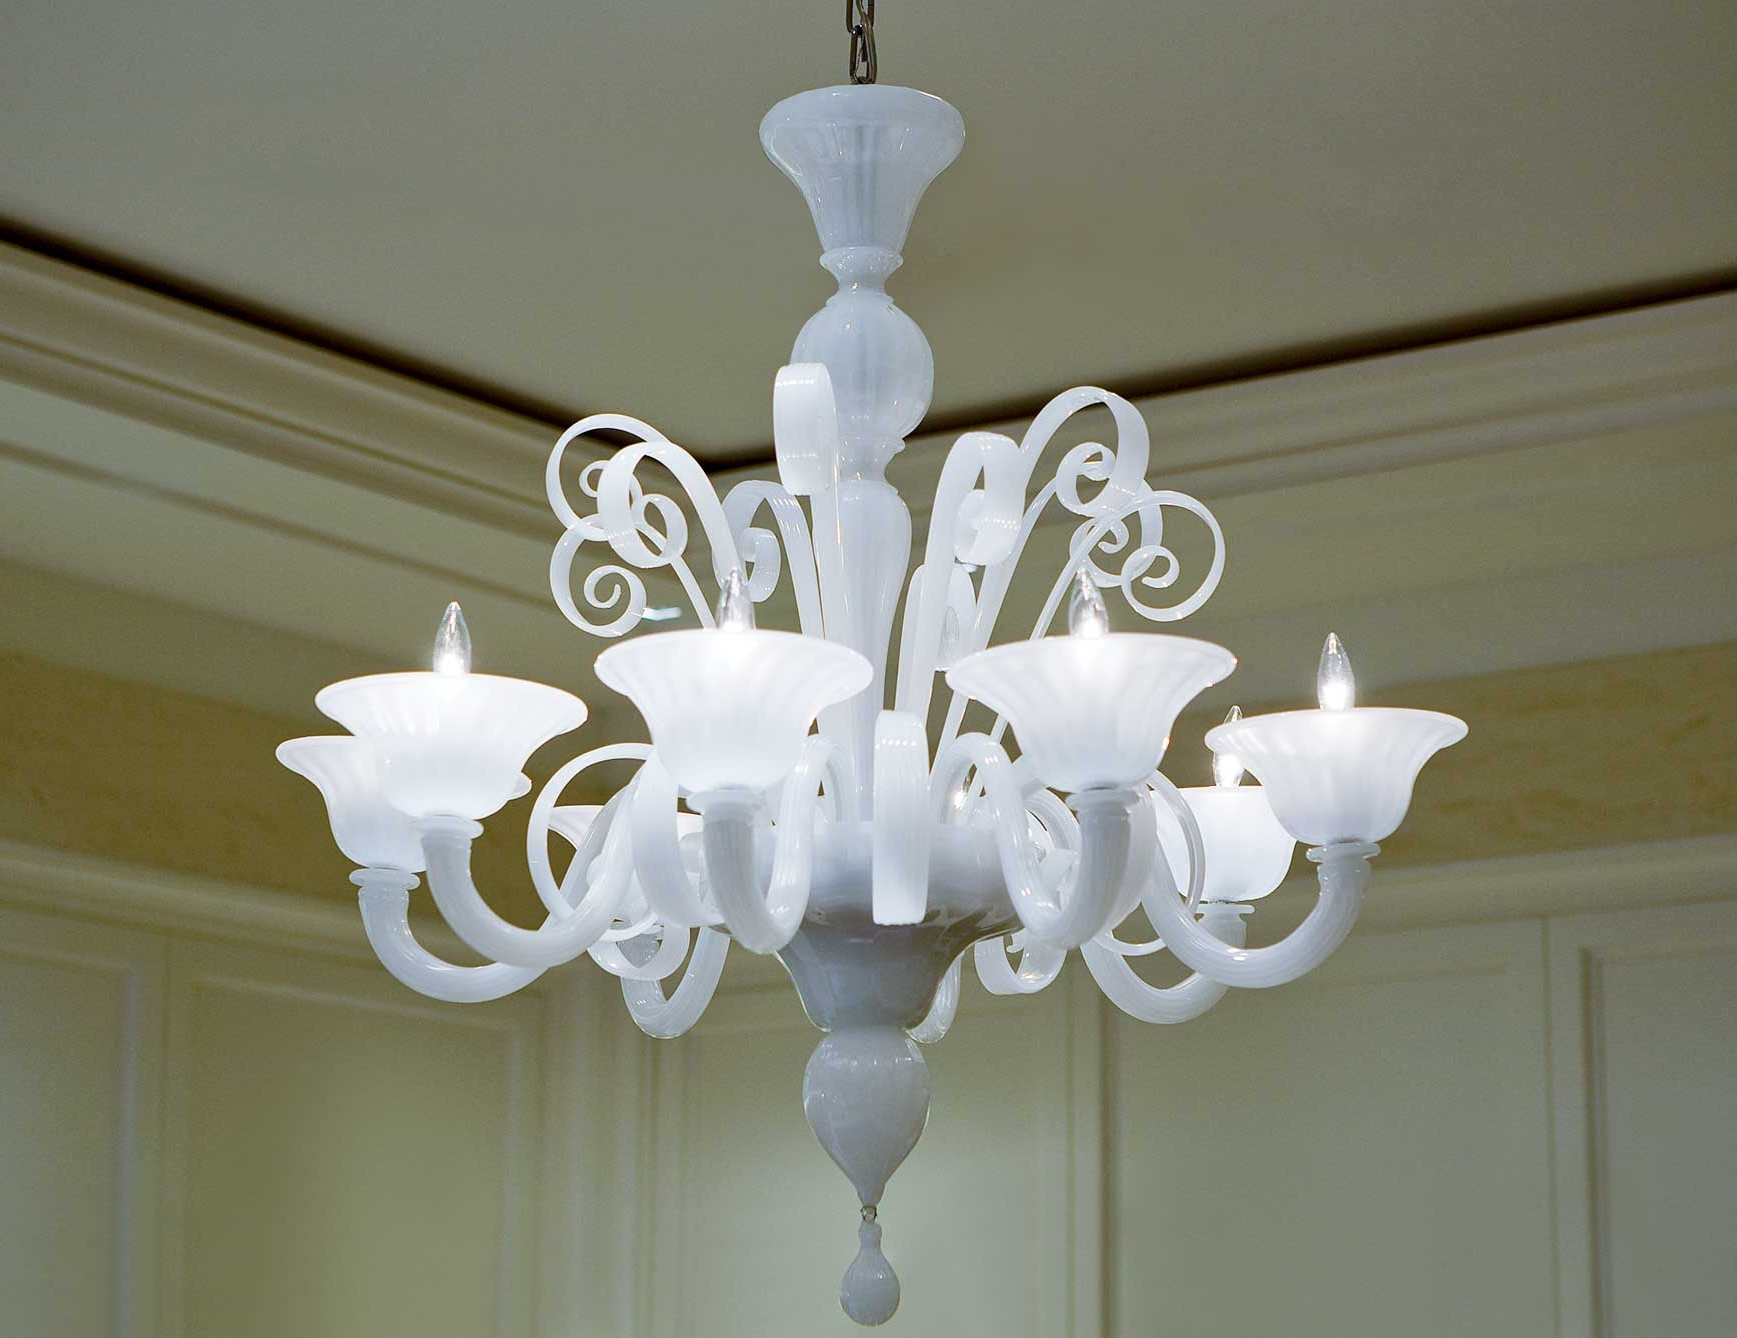 Murano Chandelier Within Best And Newest Nella Vetrina White Murano 8 Murano Chandelier In White Glass (View 15 of 20)